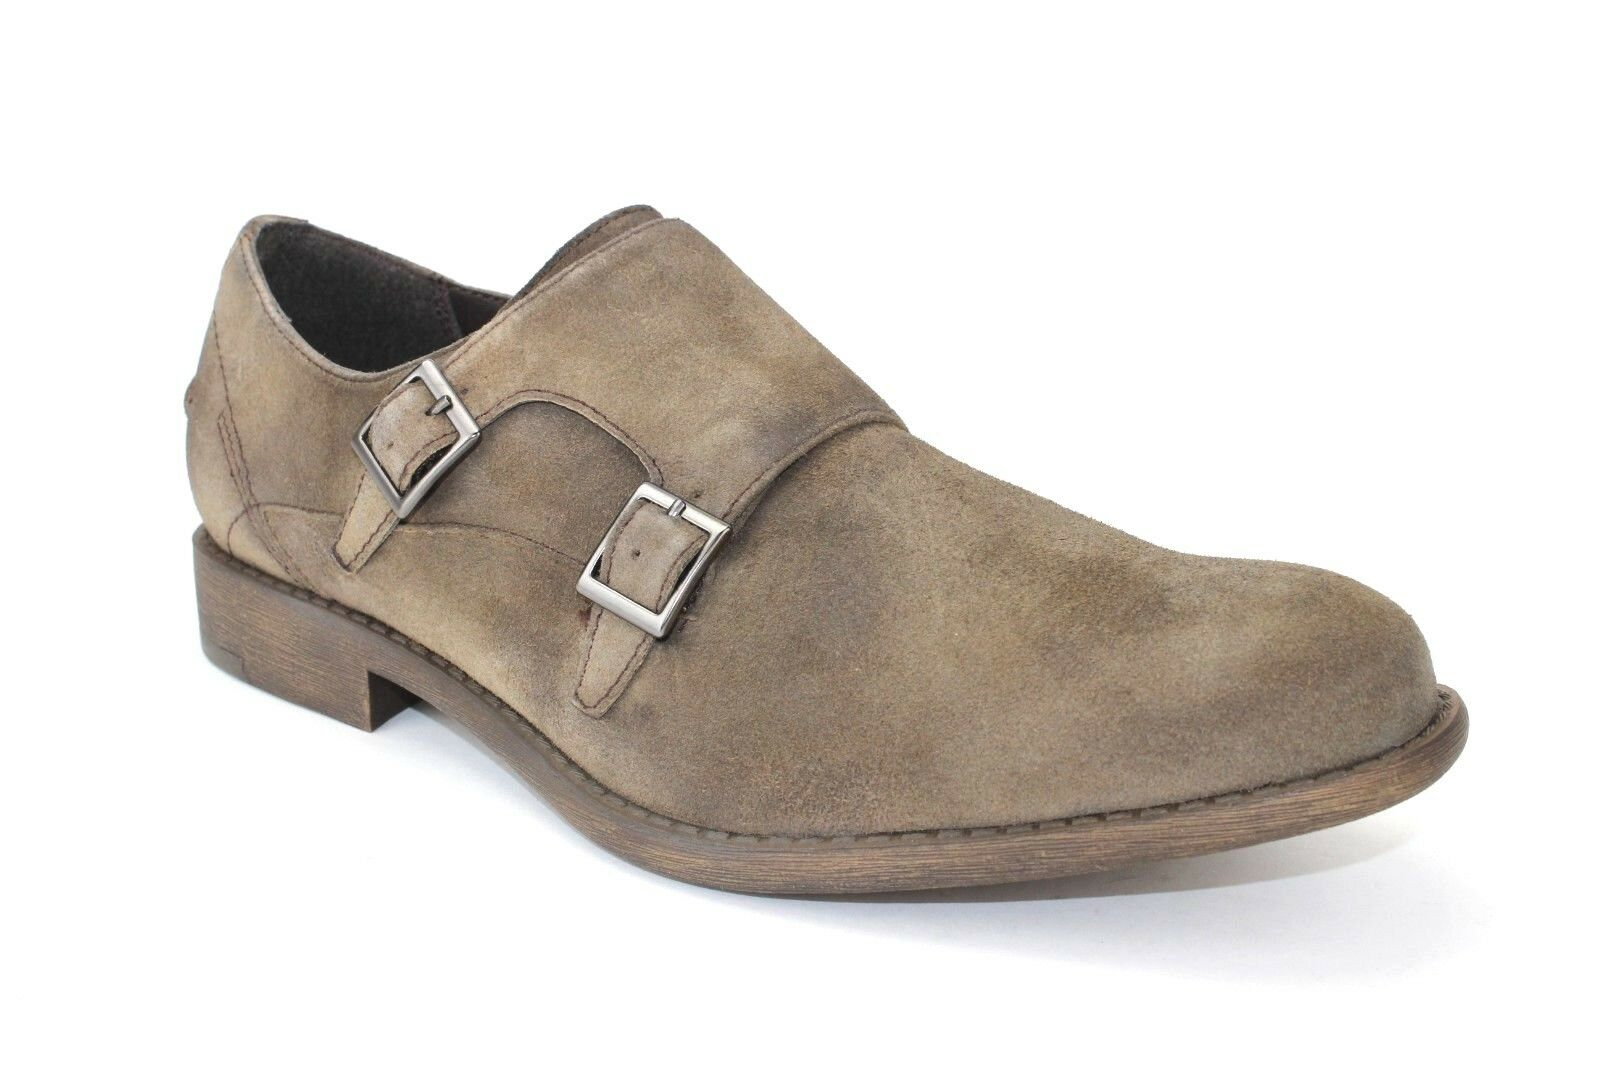 Kenneth Cole Reaction Men's Design 20644 Monk-Strap Suede Loafers Taupe Size 9 M